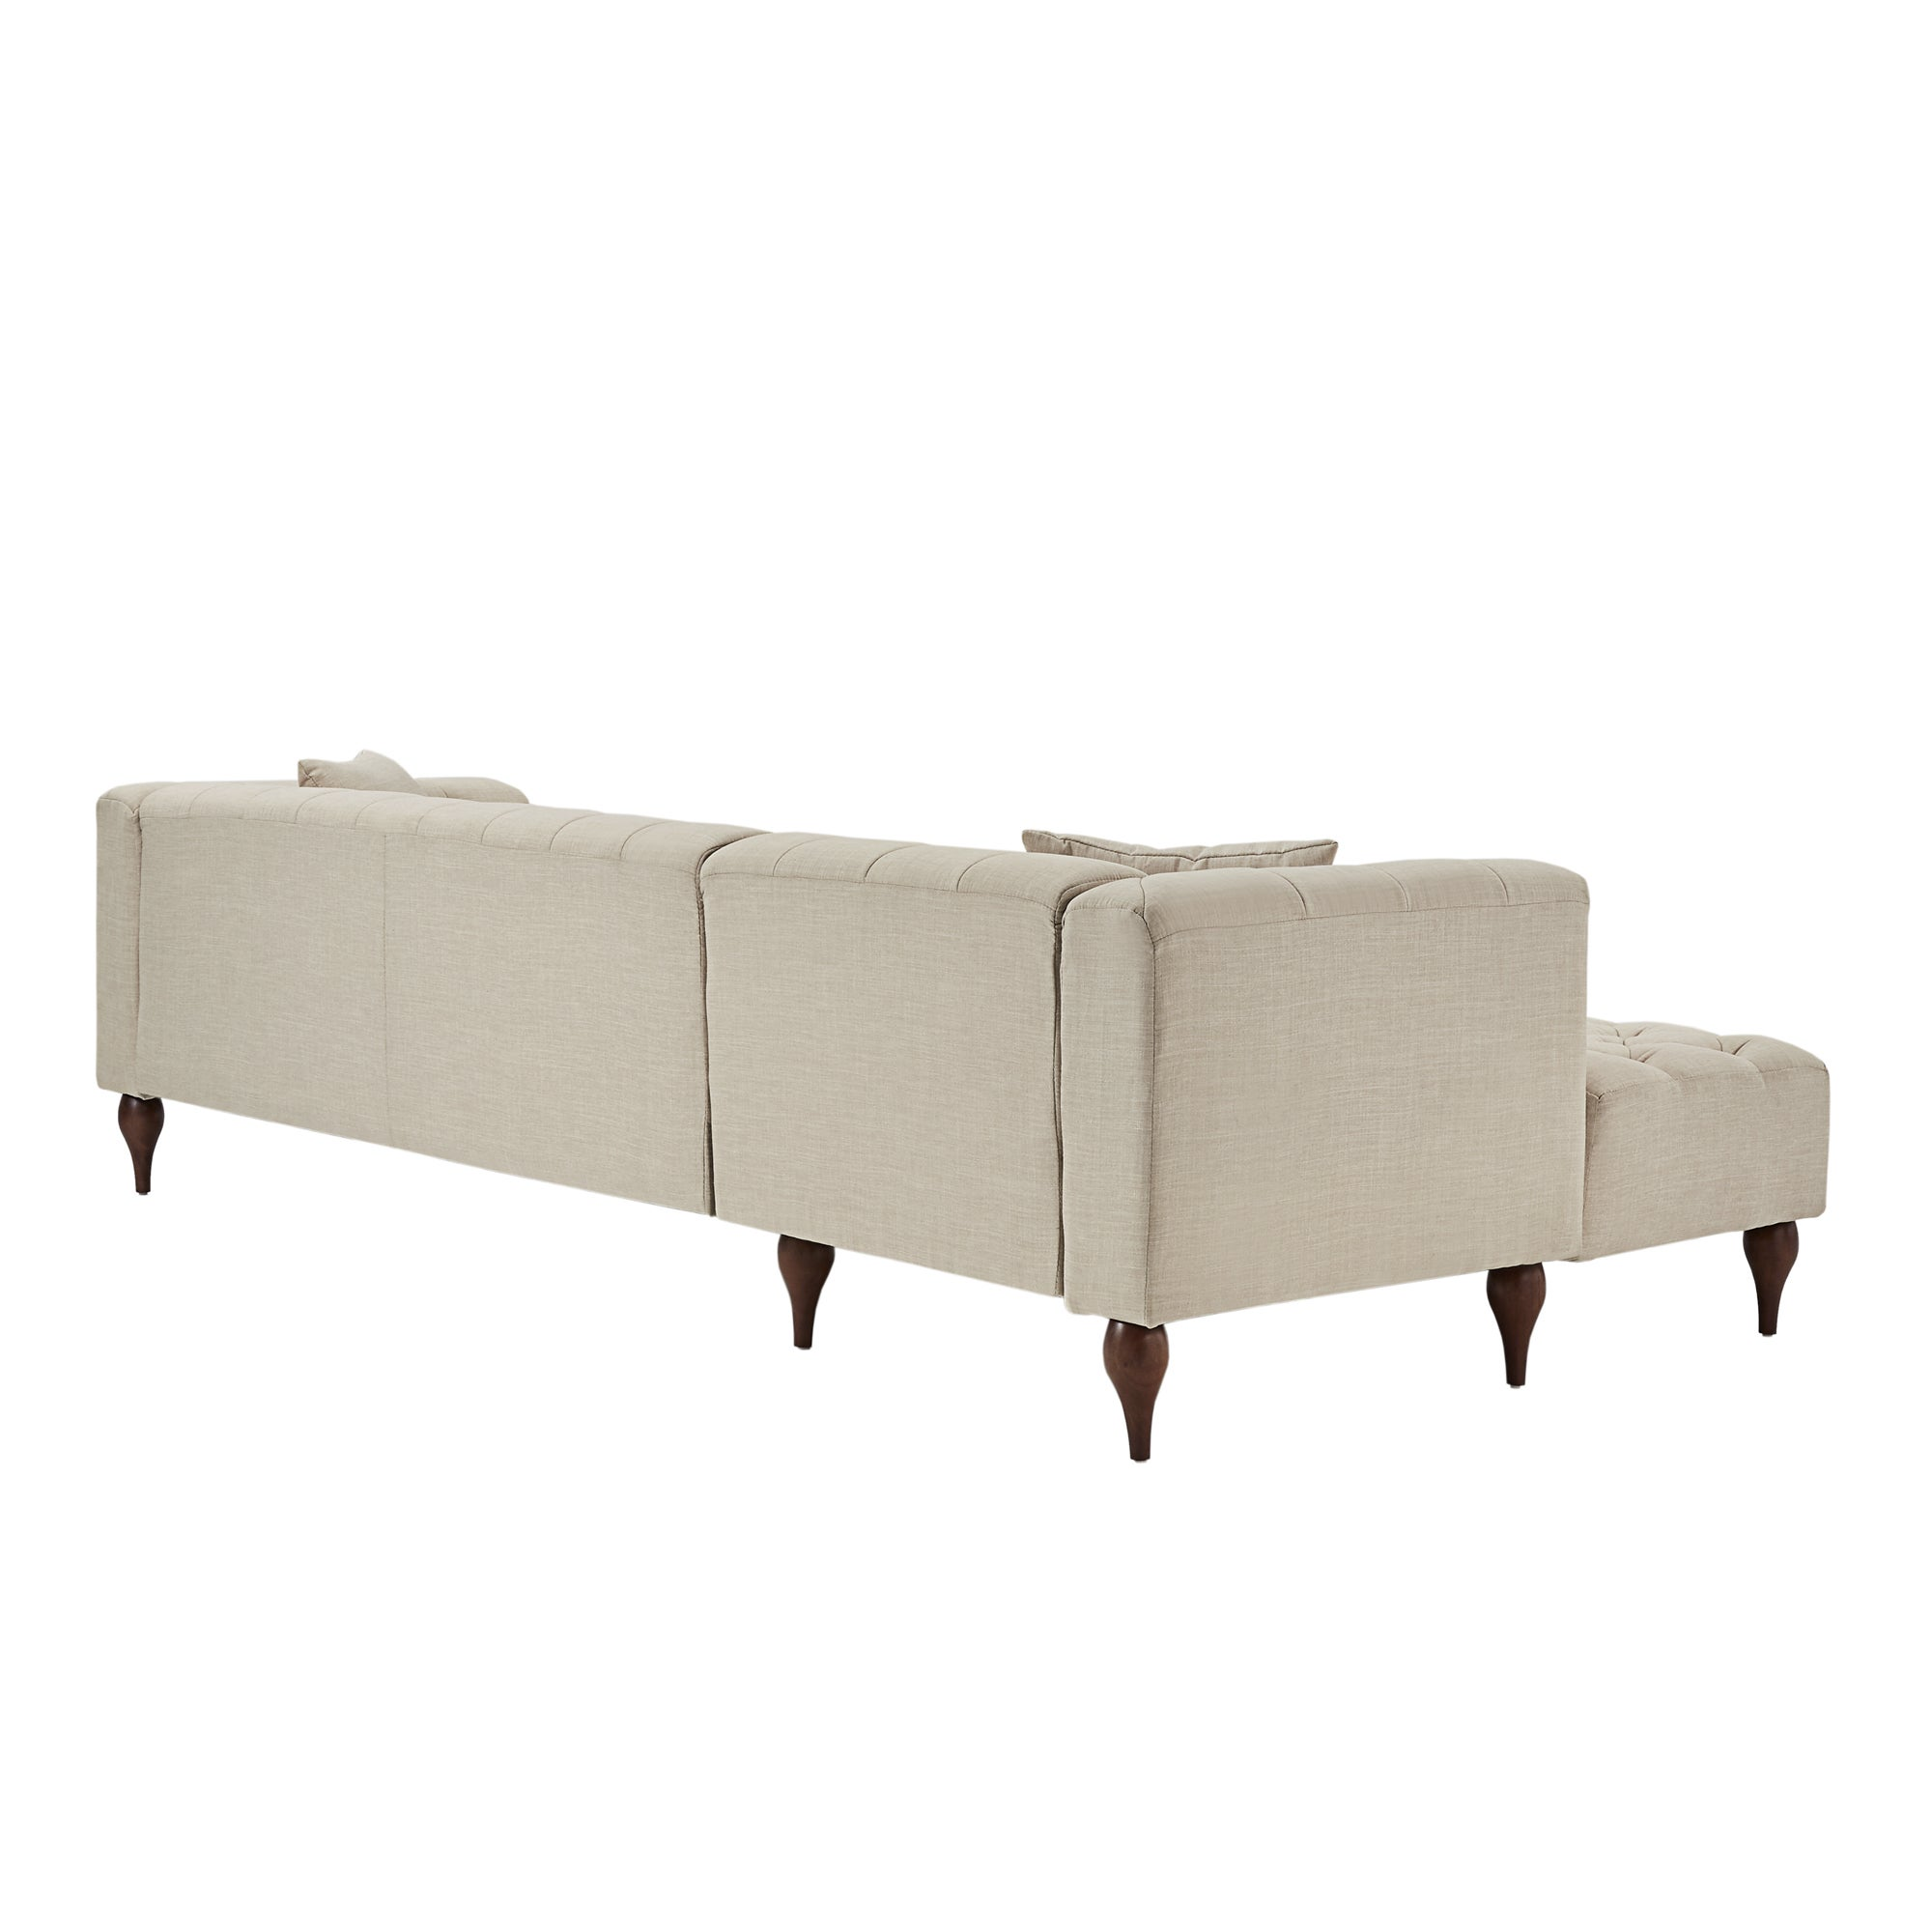 Shop Danise Tufted Linen Upholstered Tuxedo Arm 4-Seat Sofa and ...